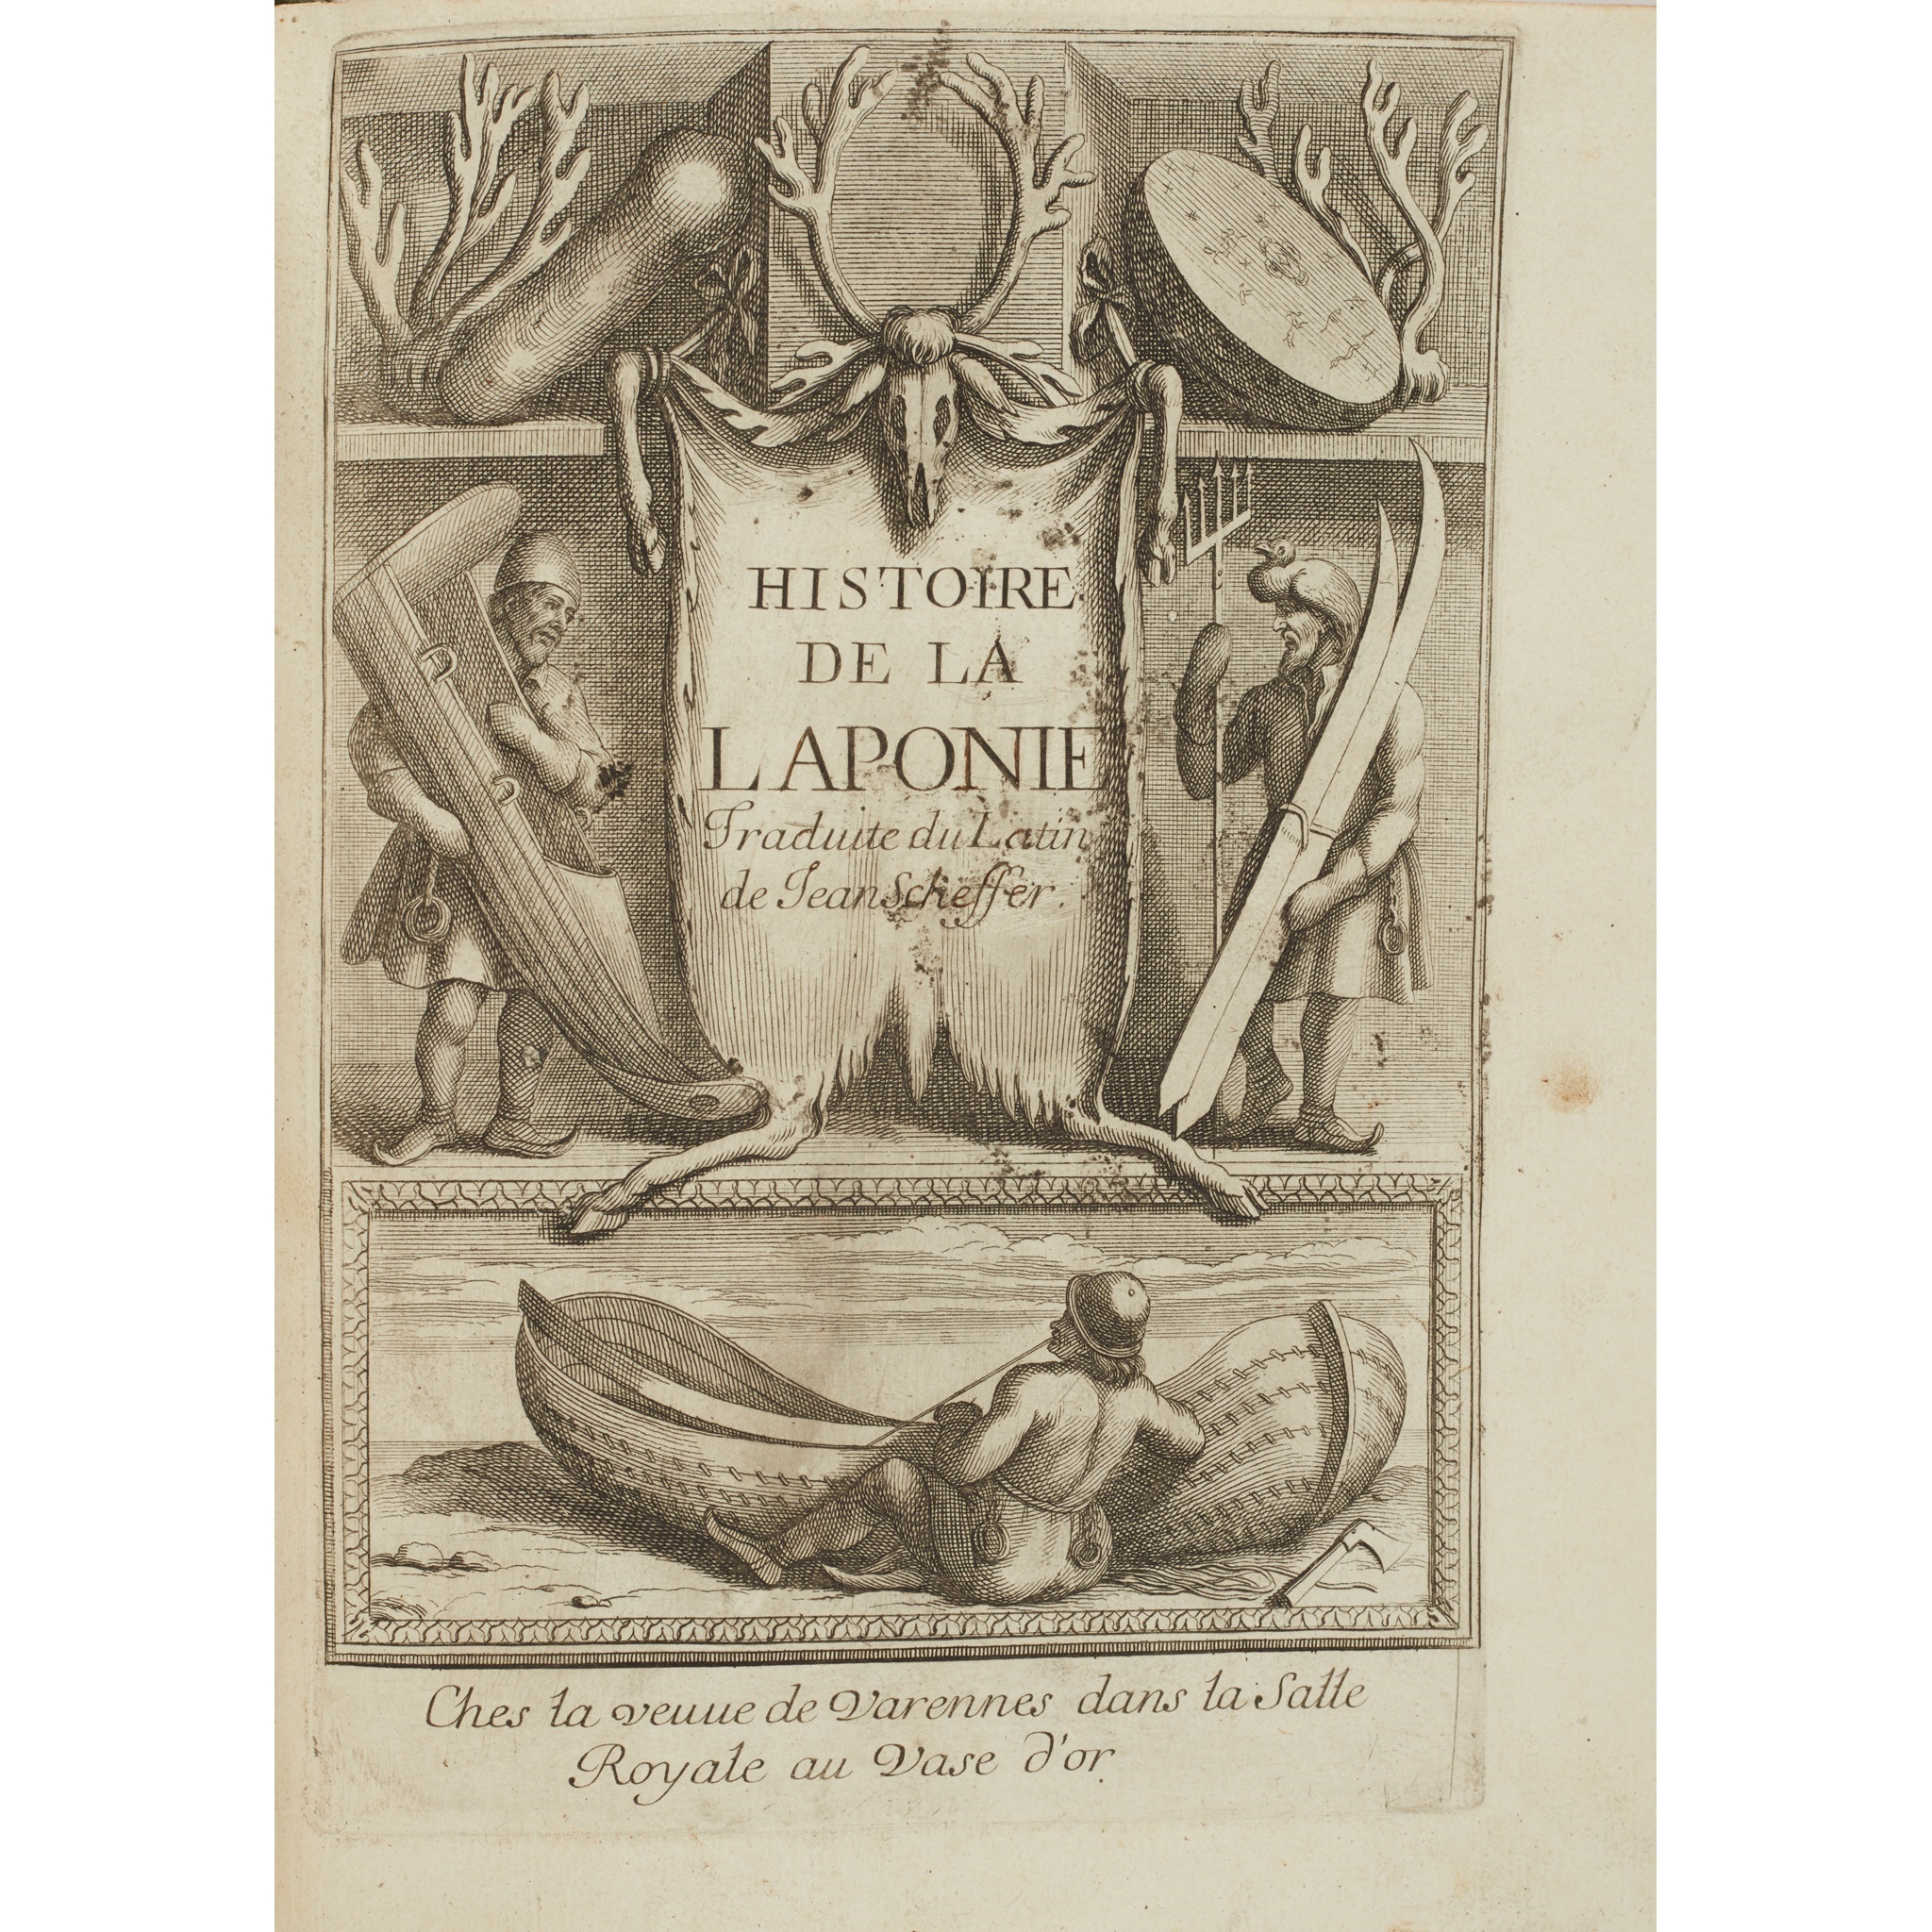 Lot 427 (Rare Books, Manuscripts, Maps & Photographs, 25th February 2021)  SCHEFFERUS, JOANNES HISTOIRE DE LA LAPONIE Paris: Olivier de Varennes, 1678. First edition in French, small 4to, additional engraved title-page, folding map, 21 plates, with additional cancel leaf A1, contemporary calf with gilt tooled spine and red morocco gilt label  Provenance: The Late Dr Helen E C Cargill Thompson  Estimate £300 - £500